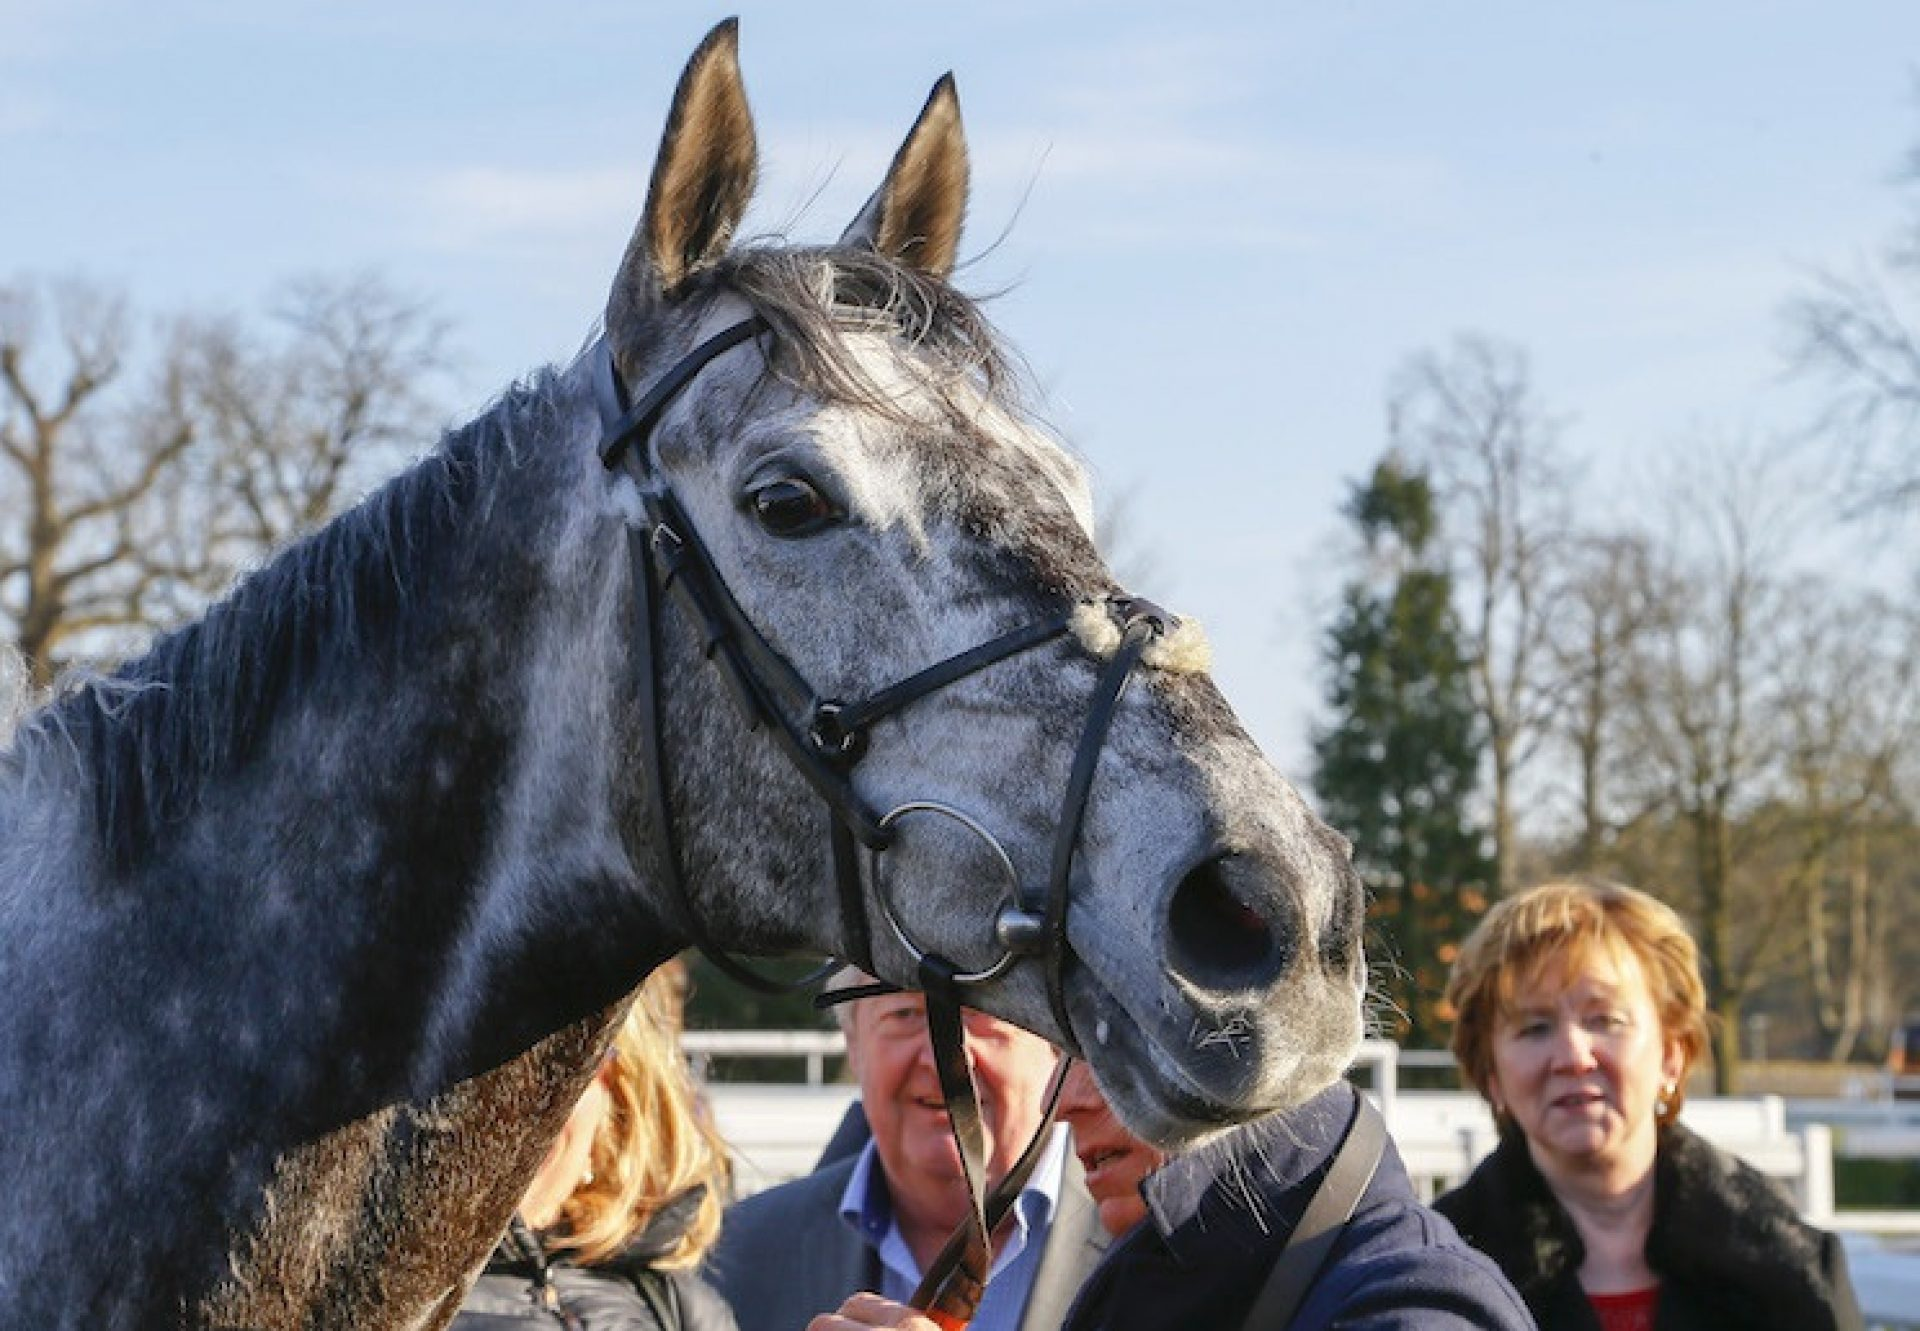 Master The World (Mastercraftsman) after winning the G3 Winter Derby at Lingfield